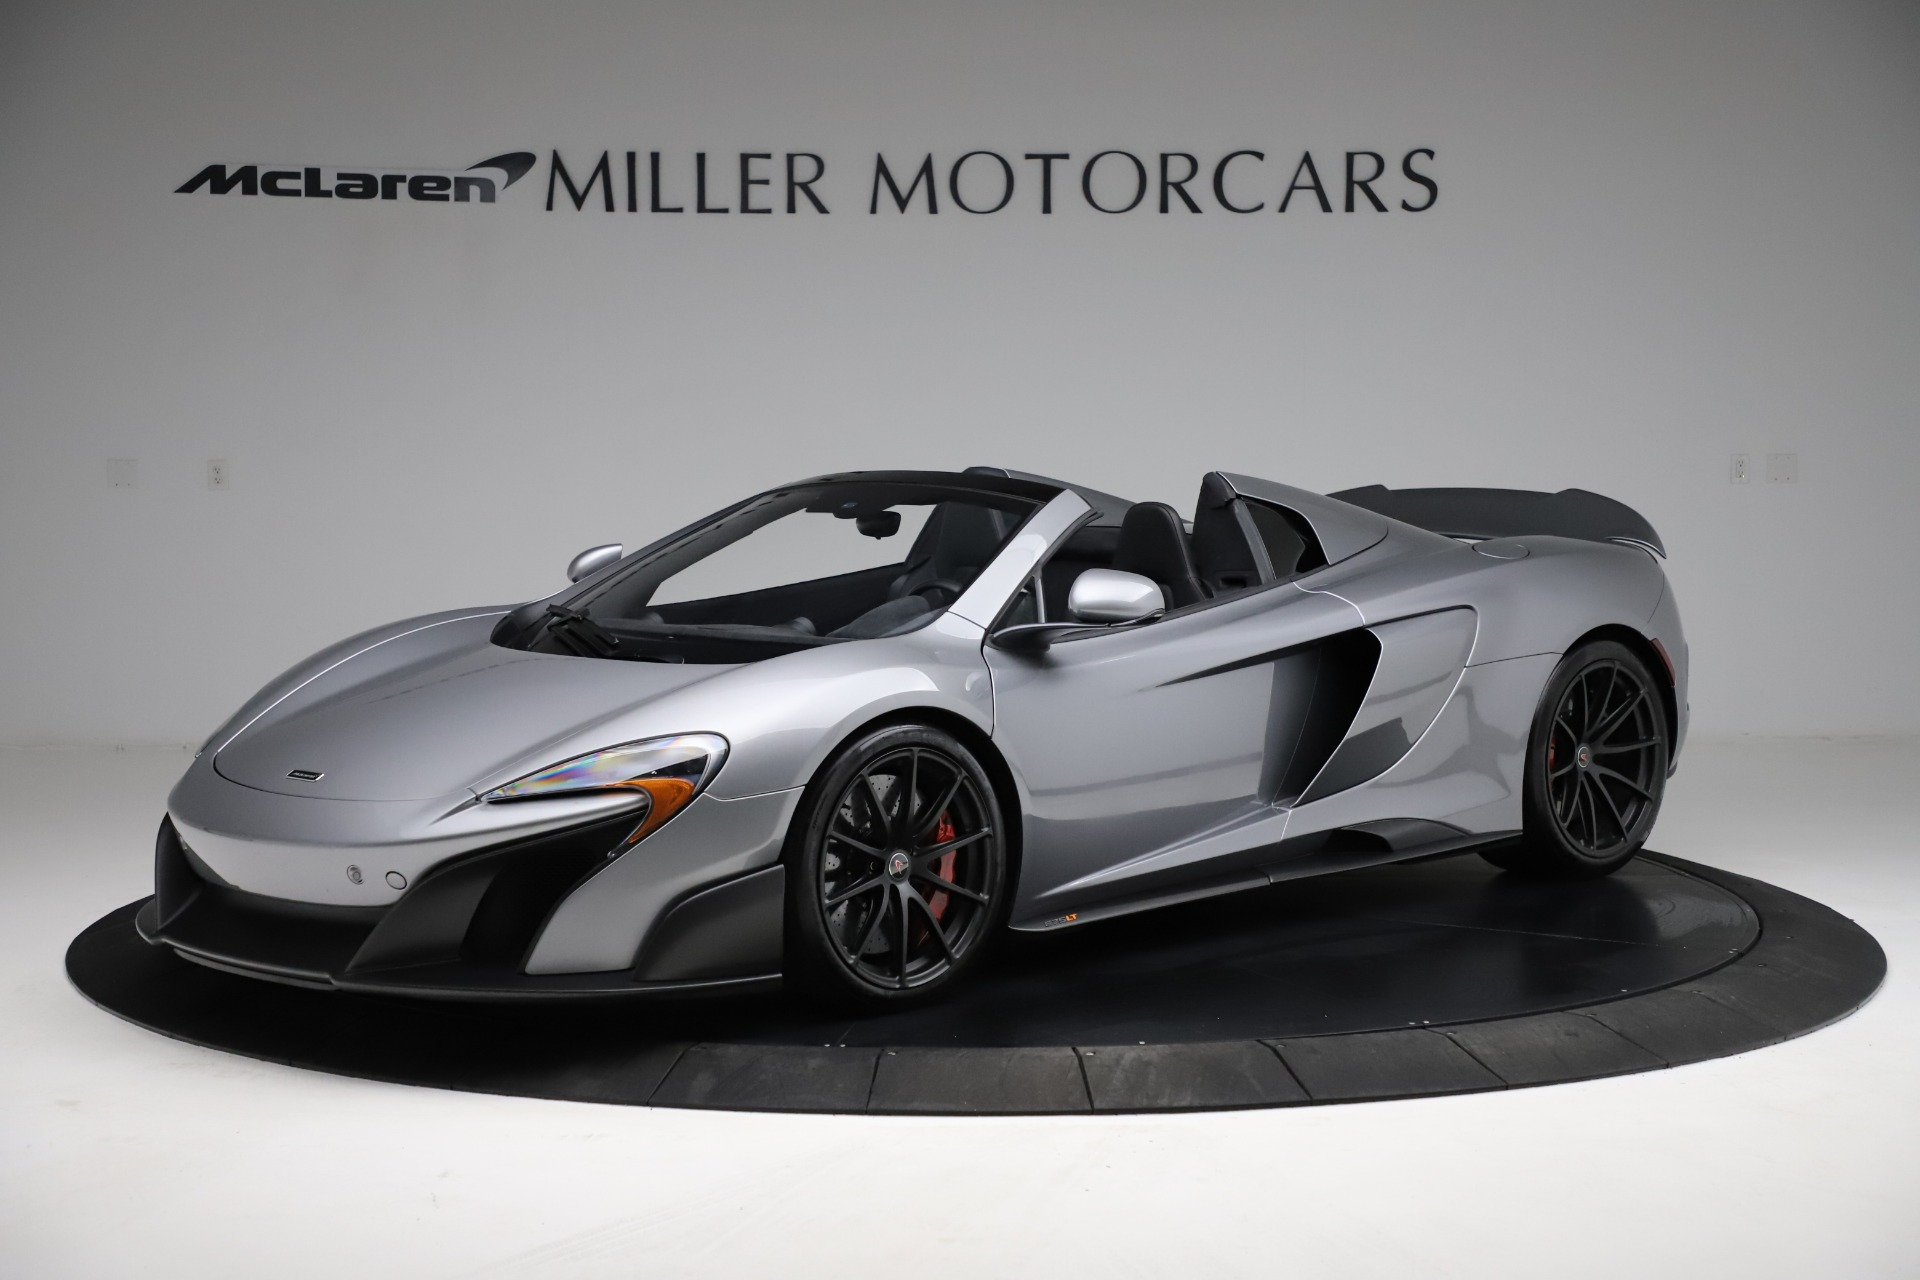 Used 2016 McLaren 675LT Spider for sale $275,900 at Aston Martin of Greenwich in Greenwich CT 06830 1